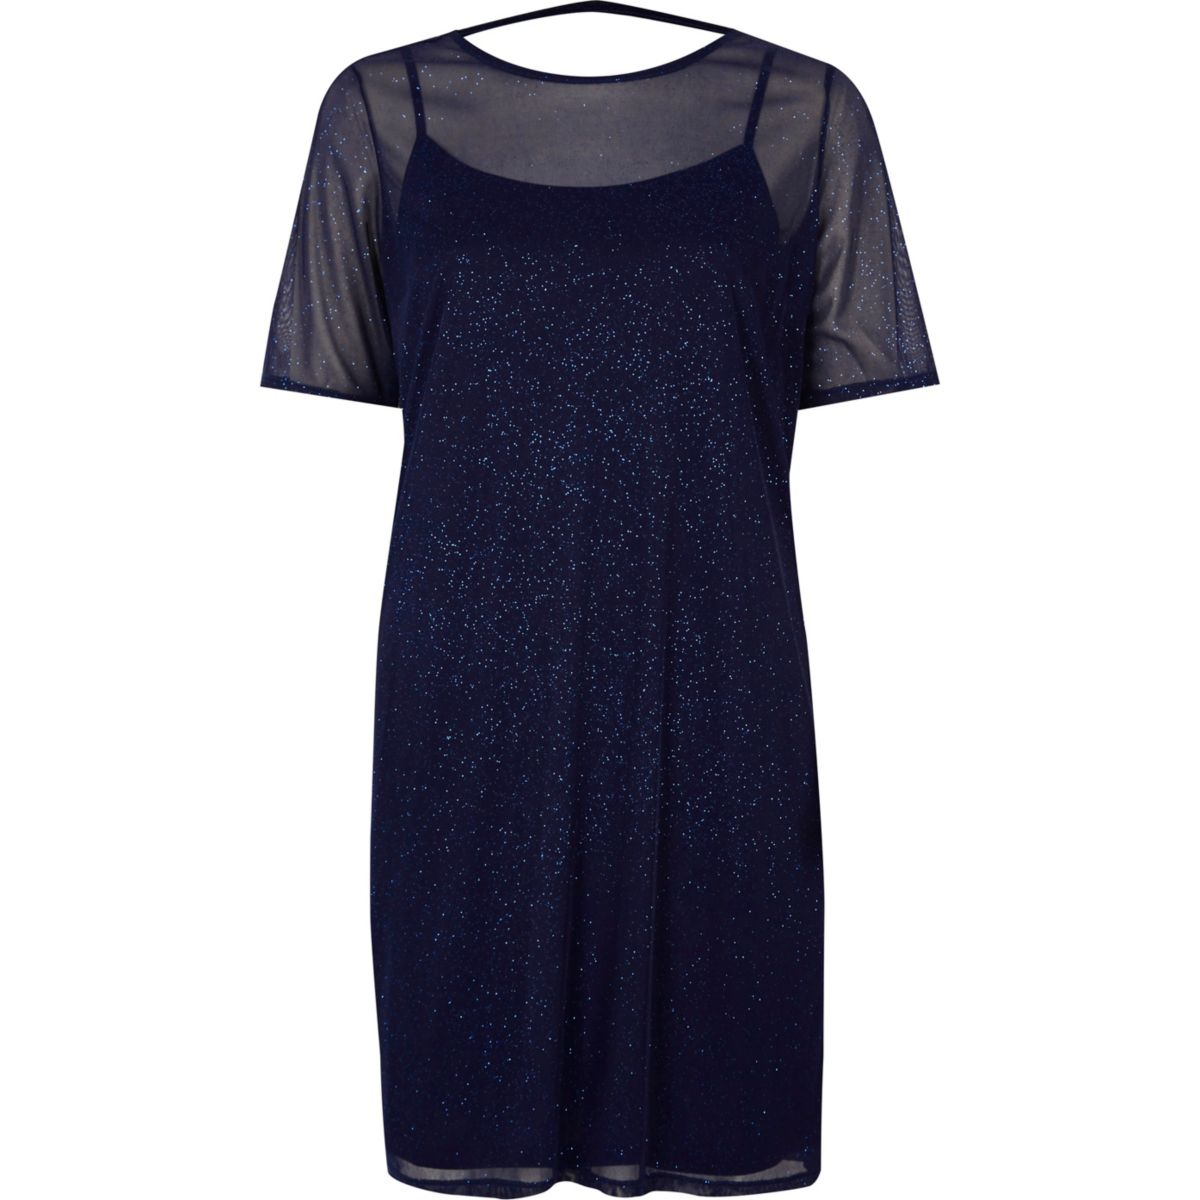 Dark Blue Glitter Mesh T Shirt Dress Dresses Sale Women